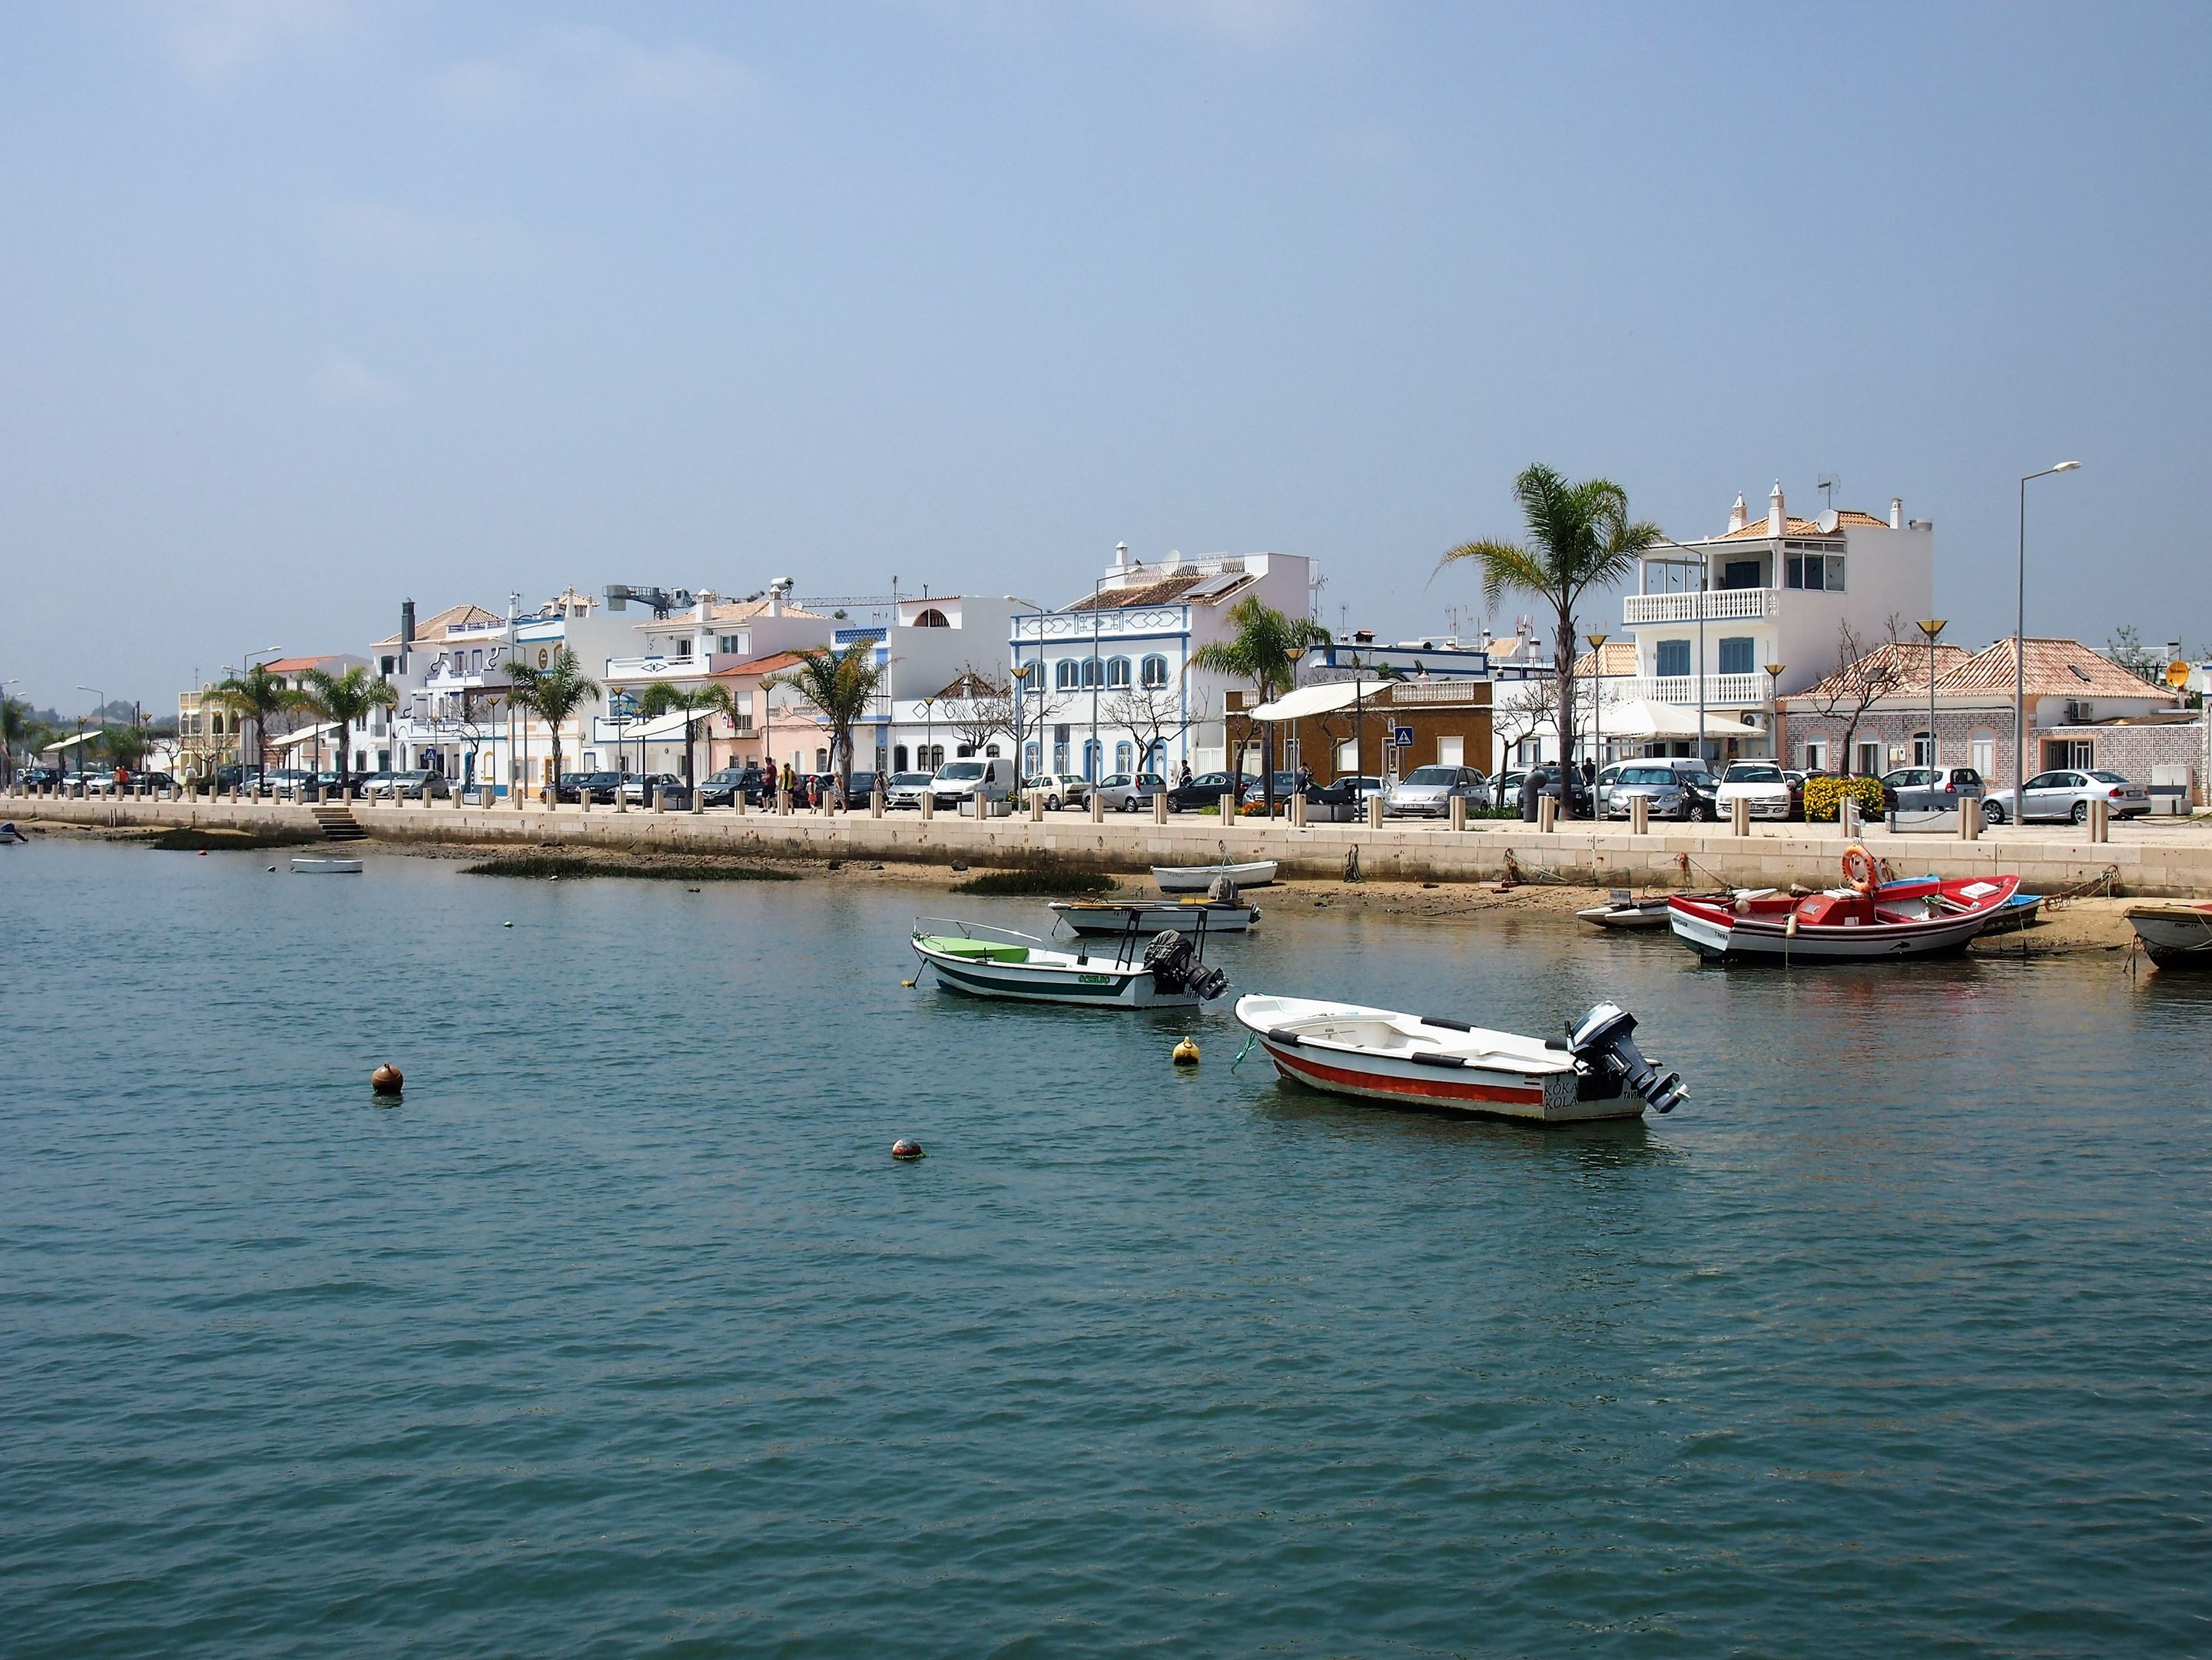 Santa Luzia. View from the ferry.